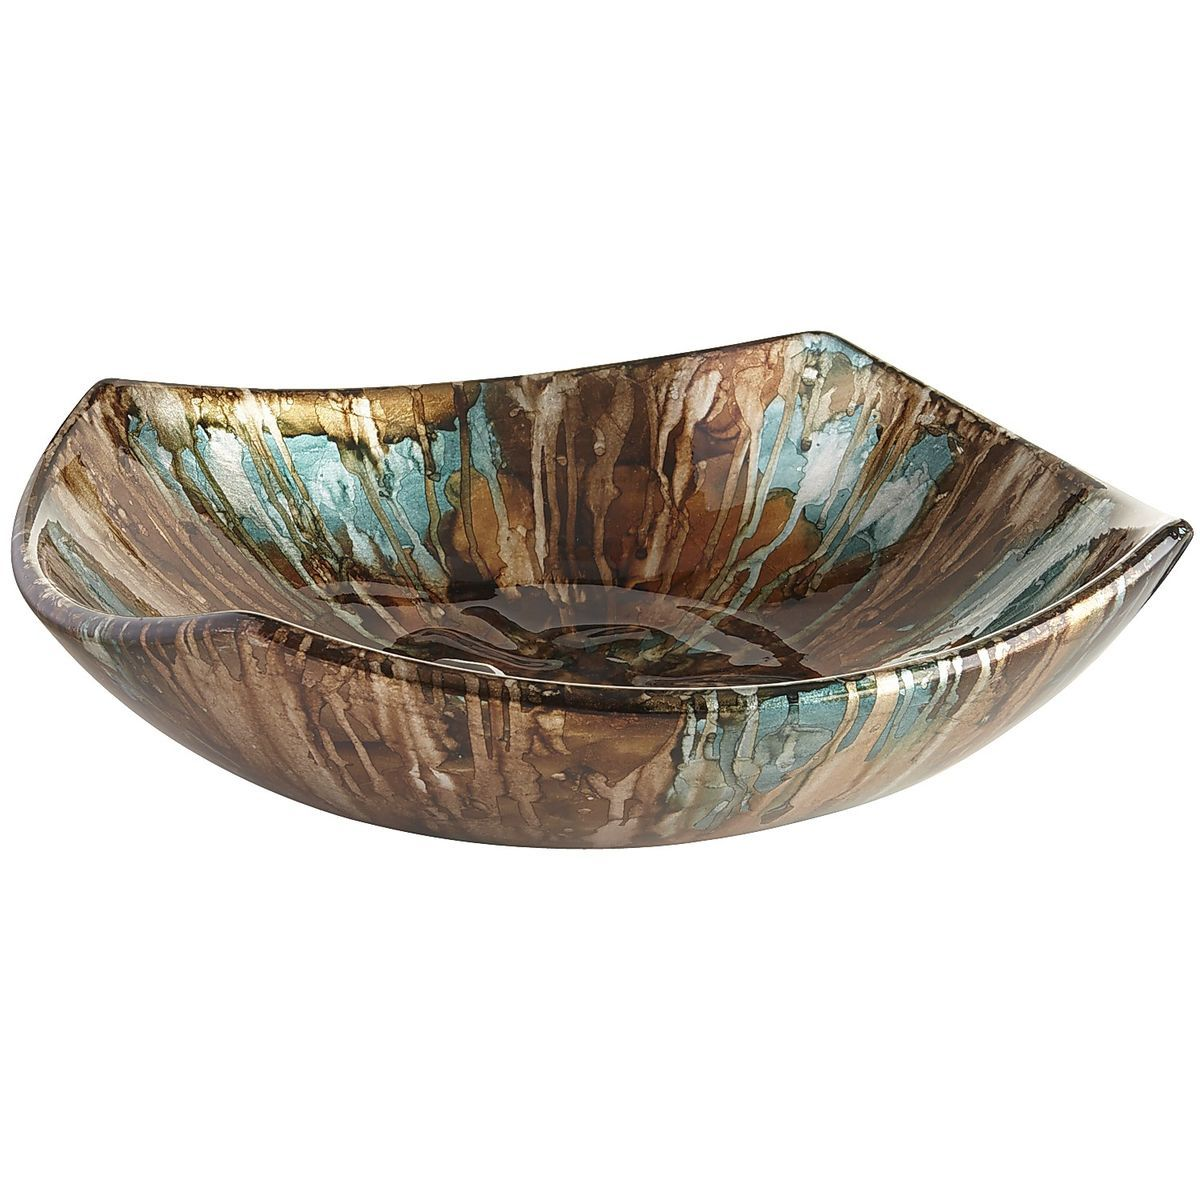 Turquoise taupe foiled decorative bowl pier 1 imports living turquoise taupe foiled decorative bowl pier 1 imports reviewsmspy